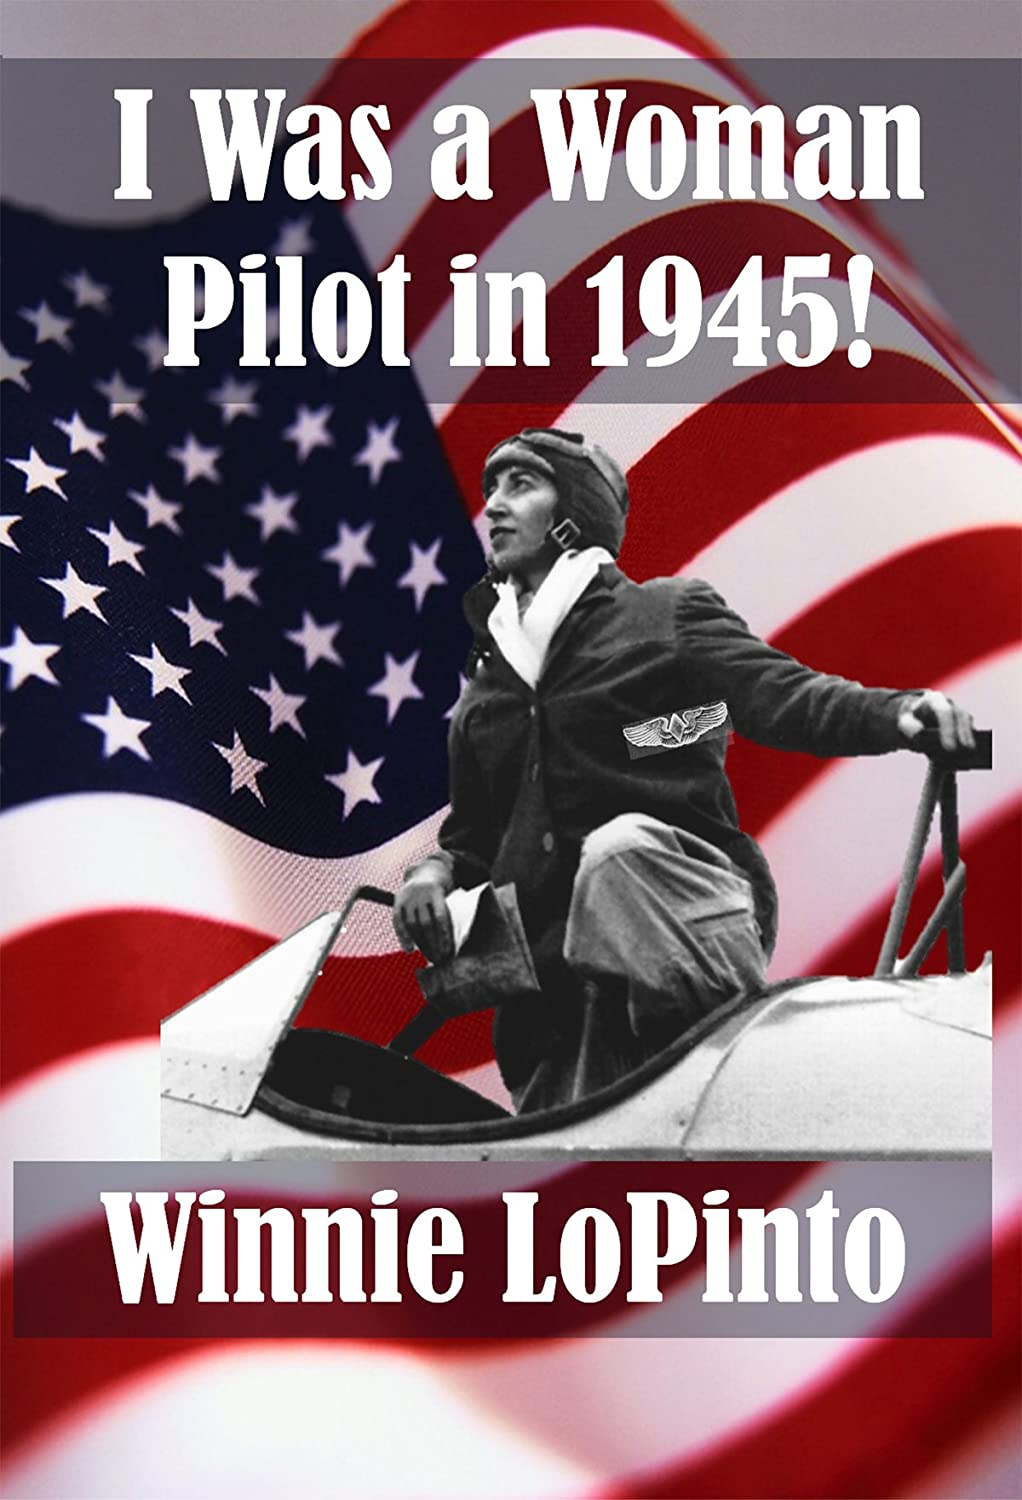 Additional keywords to help users find this book using the Amazon search engine: Women fliers, woman flier, women flyers, woman flyer, aviatrix, women aviators, woman aviator, women pilots, woman pilot, women in World Ward II, Women's History, Memoirs of women in World War II, WASP, W.A.S.P. Women's Army Service Pilots, W-7. Avenger Field, Fifinella, Avengerets, Women in Aviation, History of Aviation, Women Test Pilots.